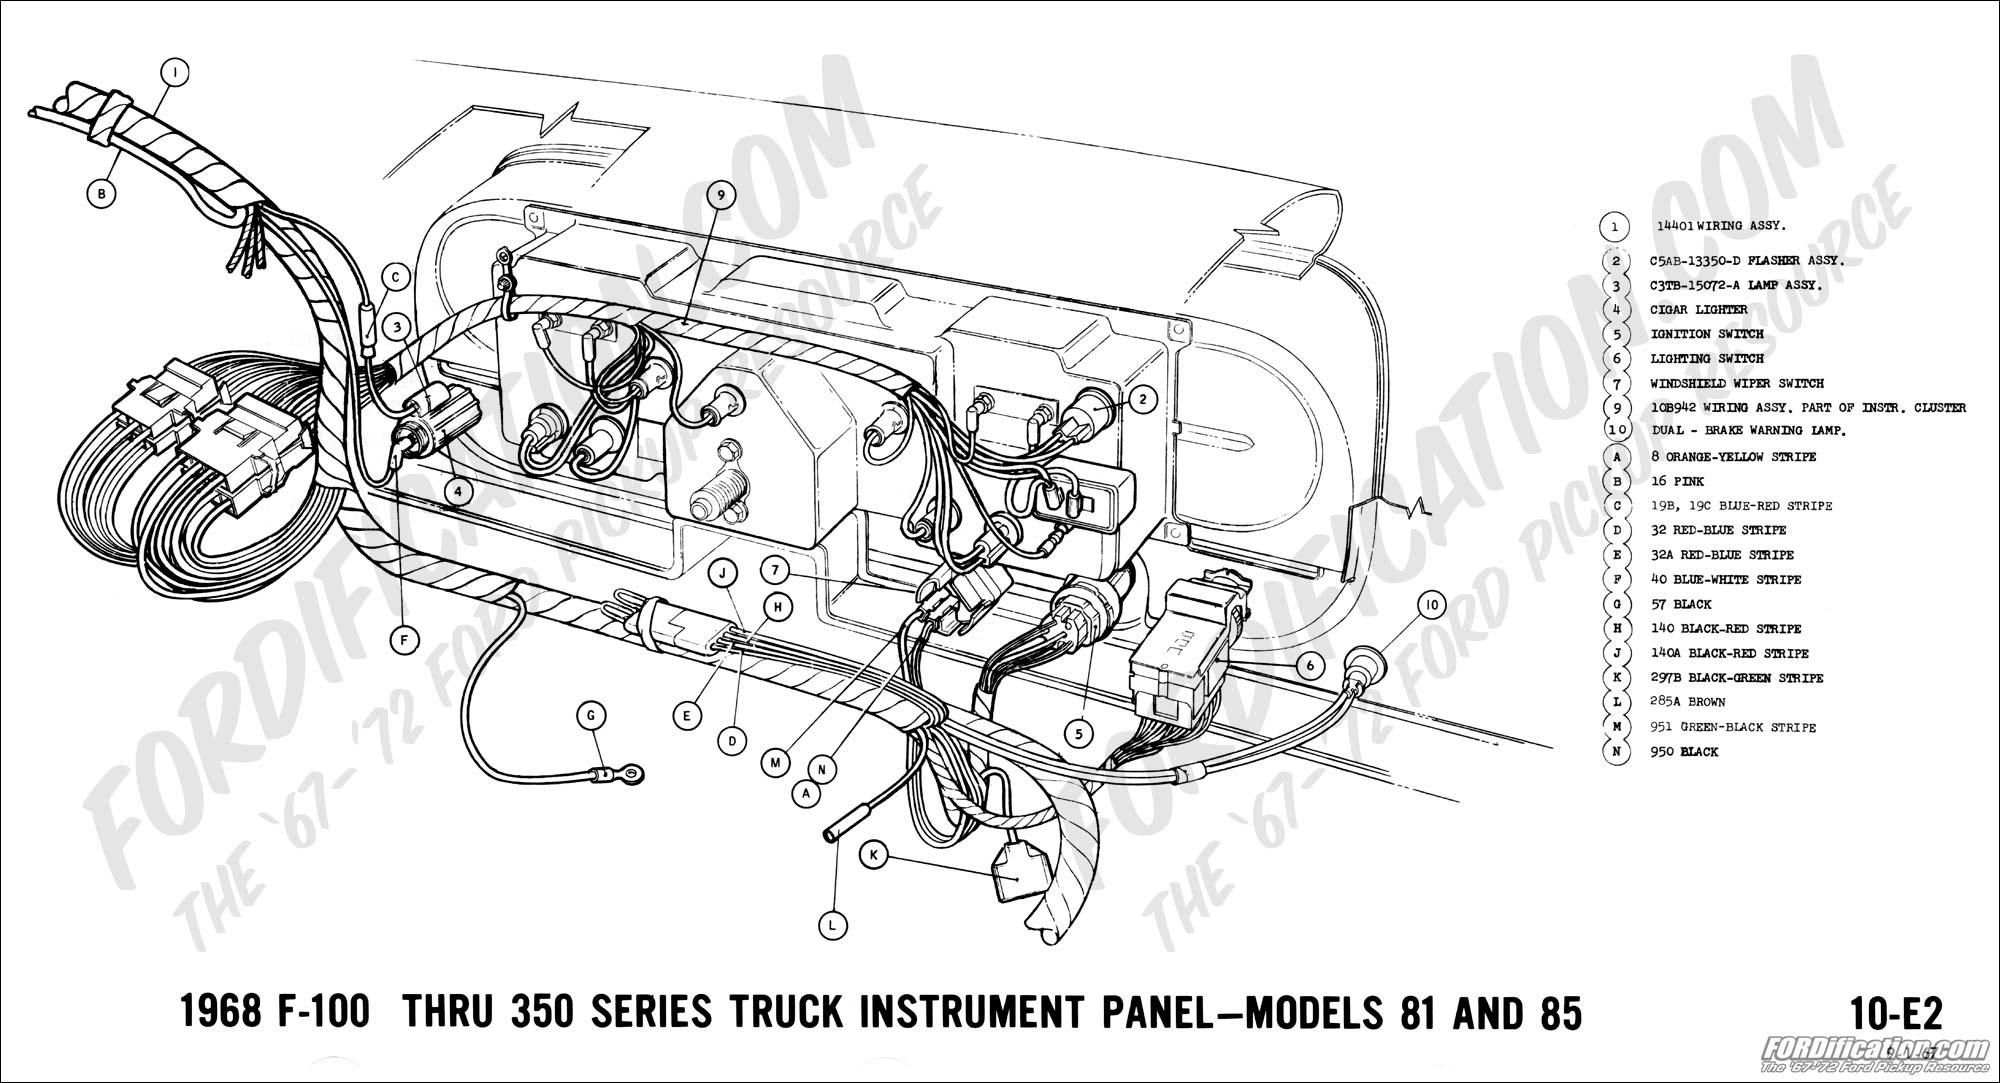 1972 Dodge Wiring Diagram Diagrams Truck Library 1968 F 100 Thru 350 Instrument Panel